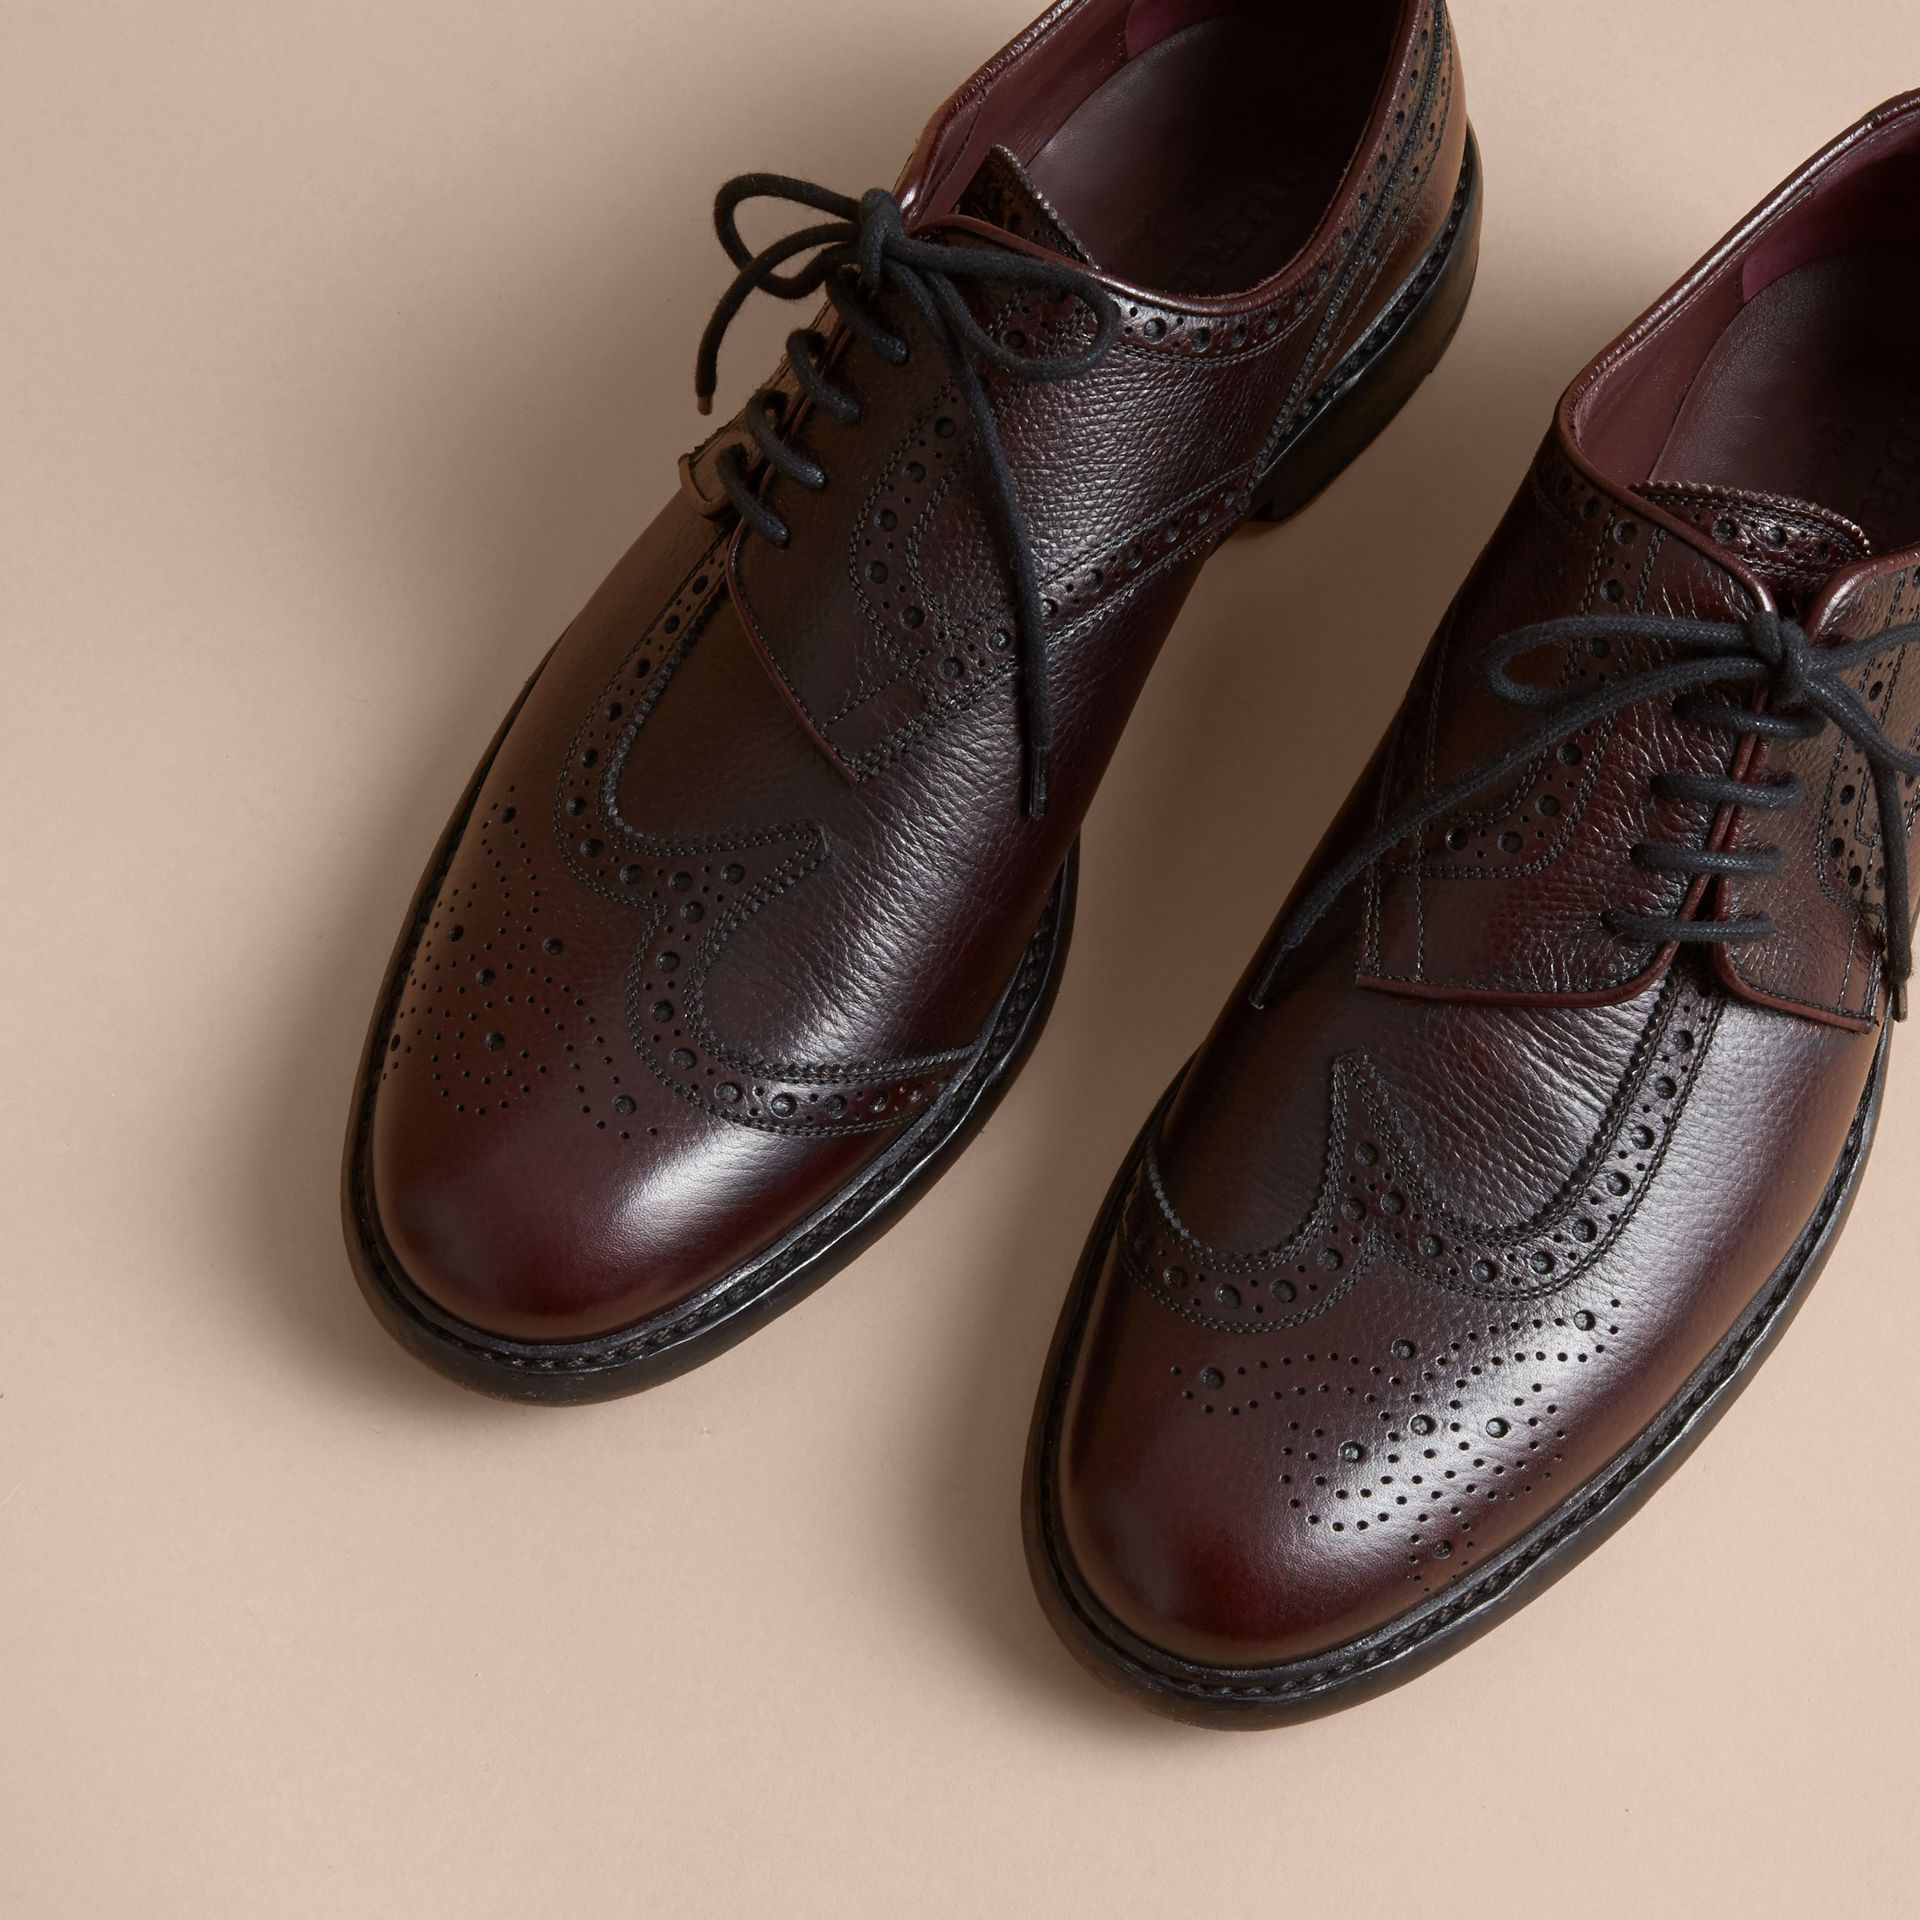 Leather Brogues with Asymmetric Closure in Burgundy - Men | Burberry - gallery image 4